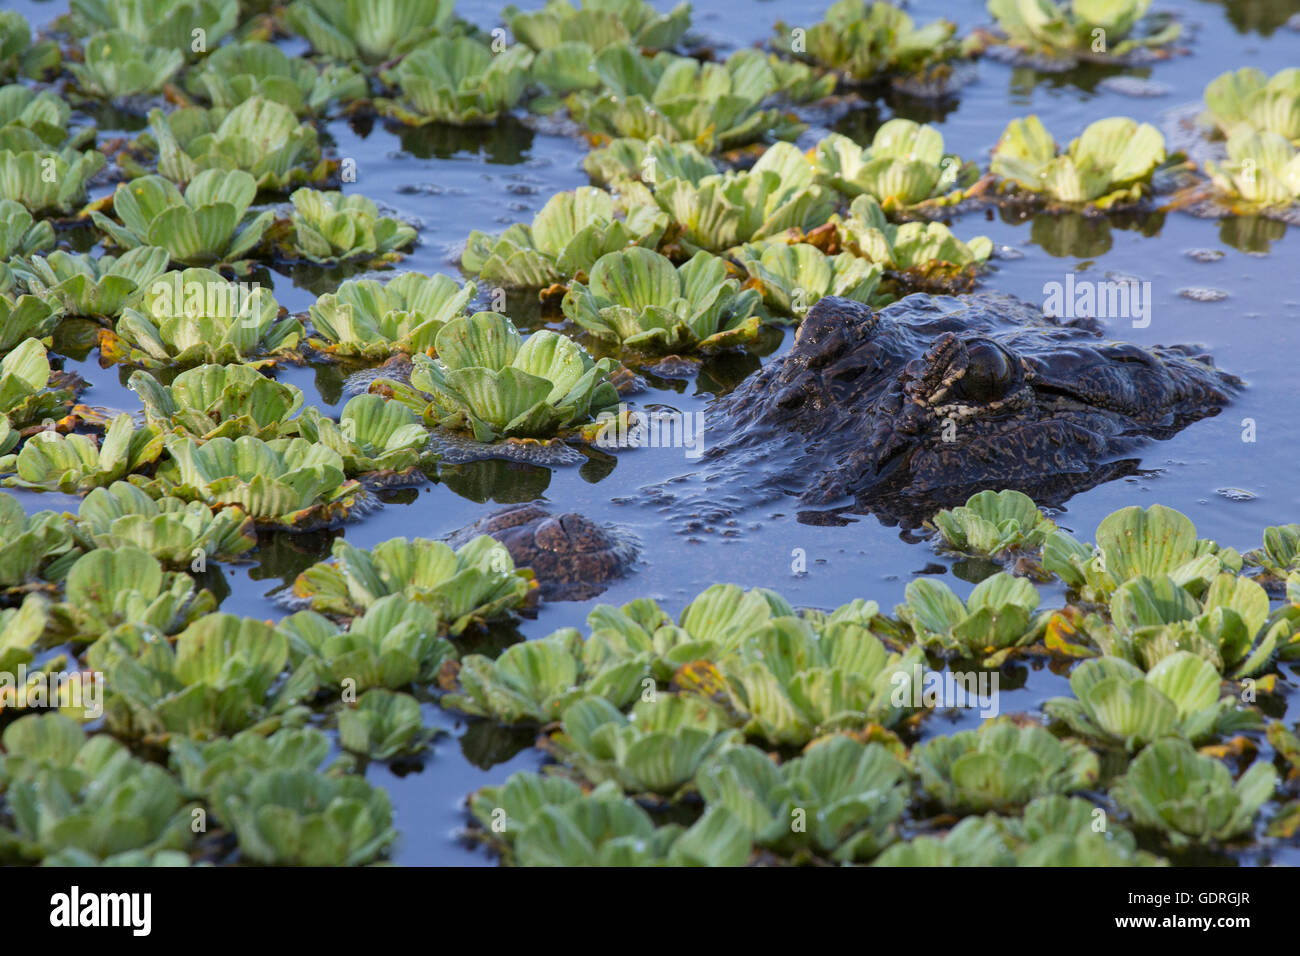 American Alligator (Alligator mississippiensis) submerged in pond and water lettuce - Stock Image